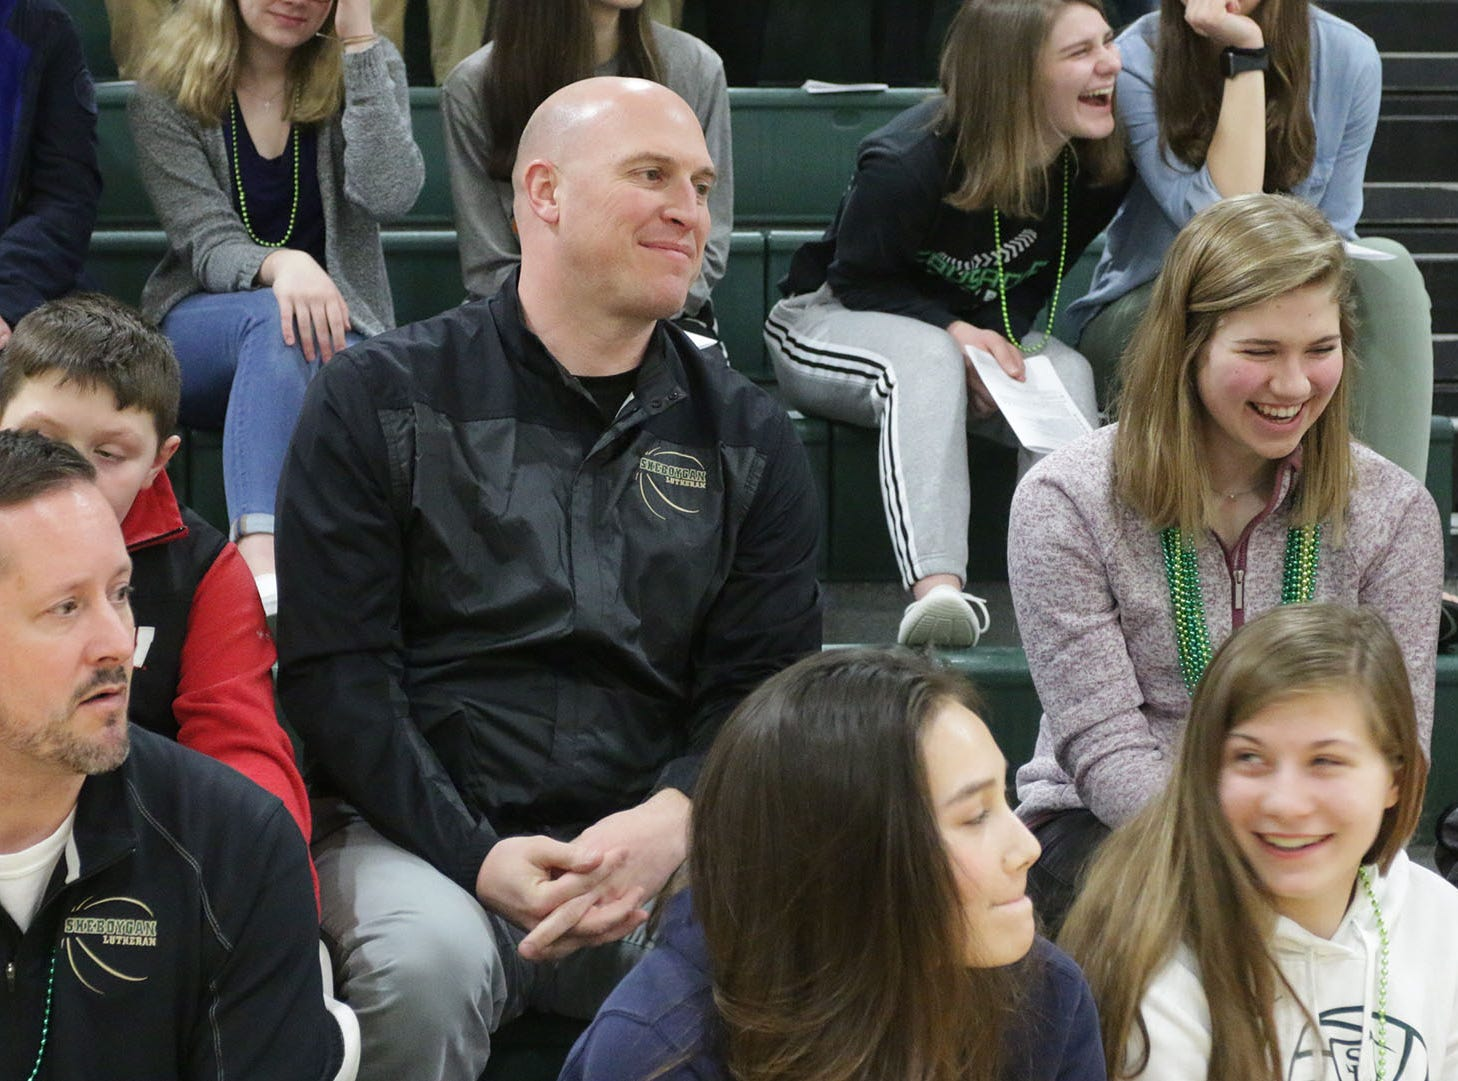 Coach Nick Verhagen smiles during the pep rally for the Sheboygan Lutheran basketball team, Thursday, March 14, 2109, in Sheboygan, Wis. The Crusaders will compete in WIAA Div. 5 basketball competition.